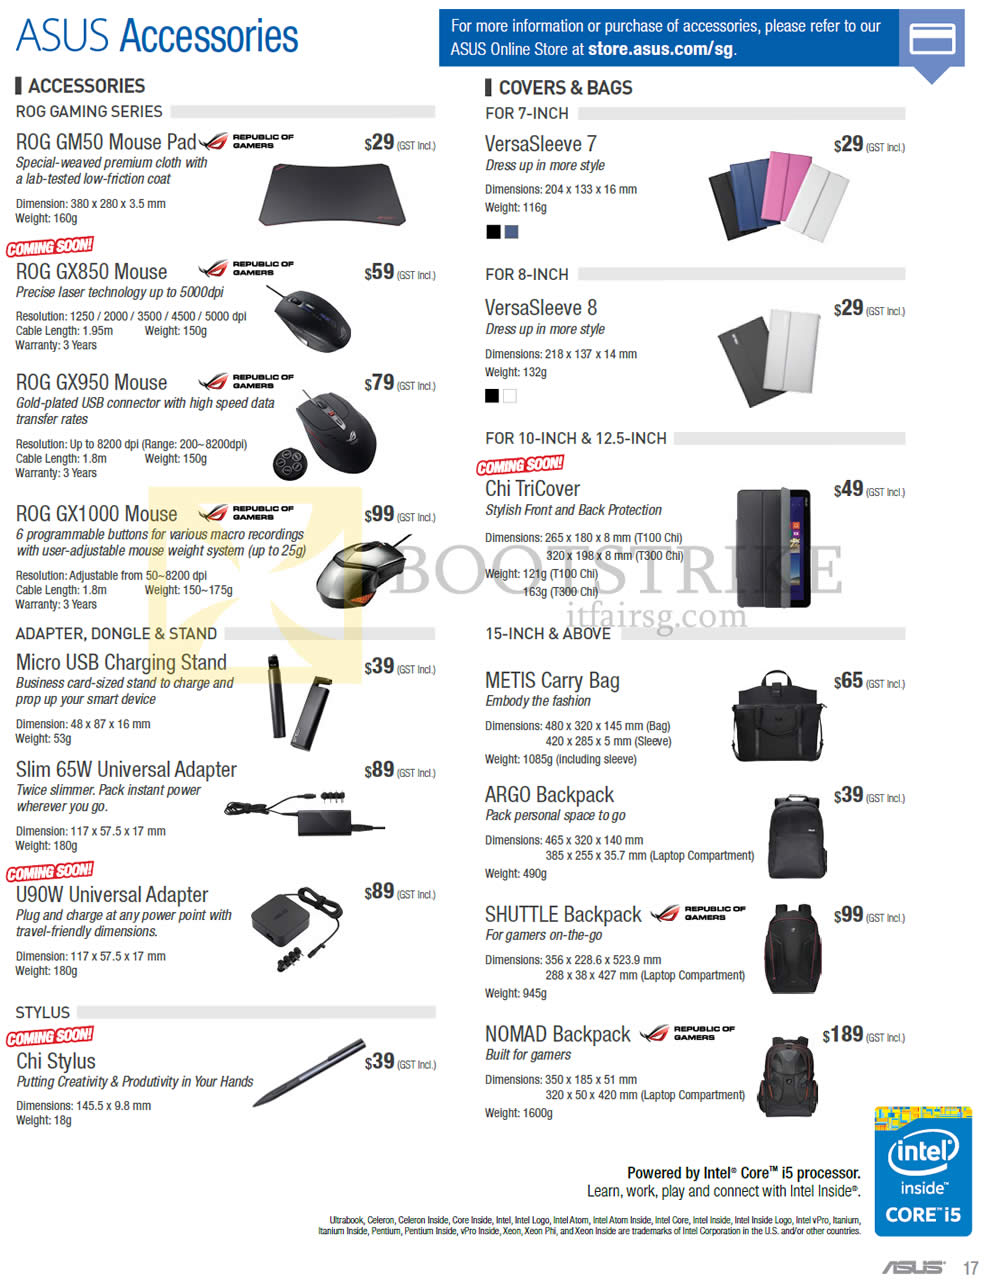 PC SHOW 2015 price list image brochure of ASUS Accessories ROG, Covers, Bags, Mouse, Adapter, Carry Bag, Backpack